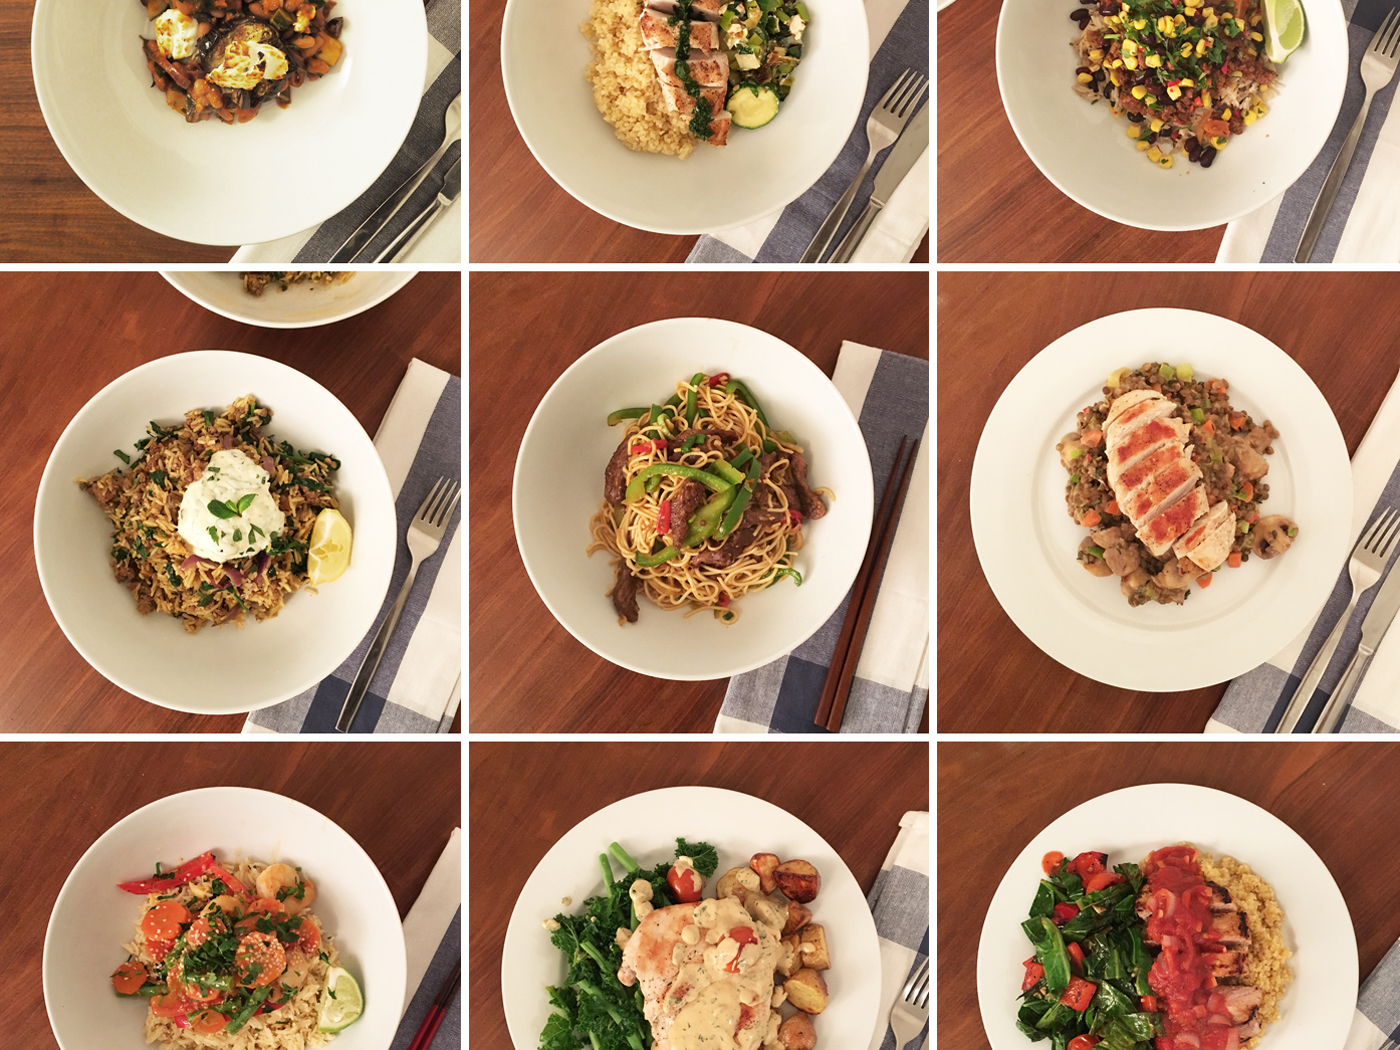 Free Without Survey Hellofresh Meal Kit Delivery Service